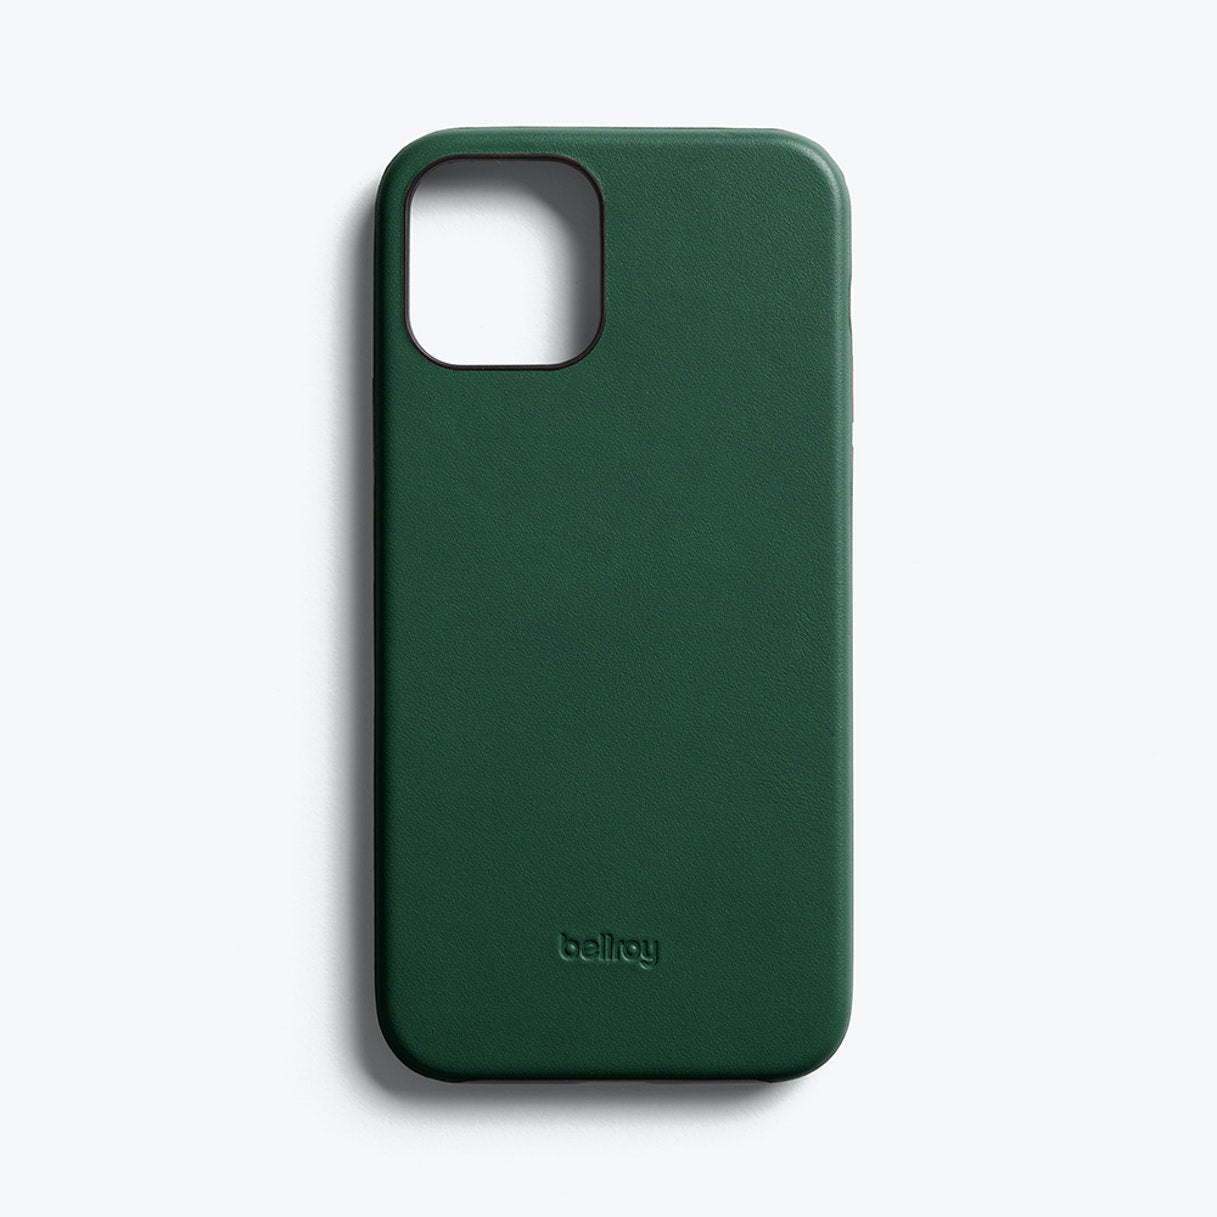 Bellroy Slim Genuine Leather Case For iPhone iPhone 12 / 12 Pro - RACING GREEN